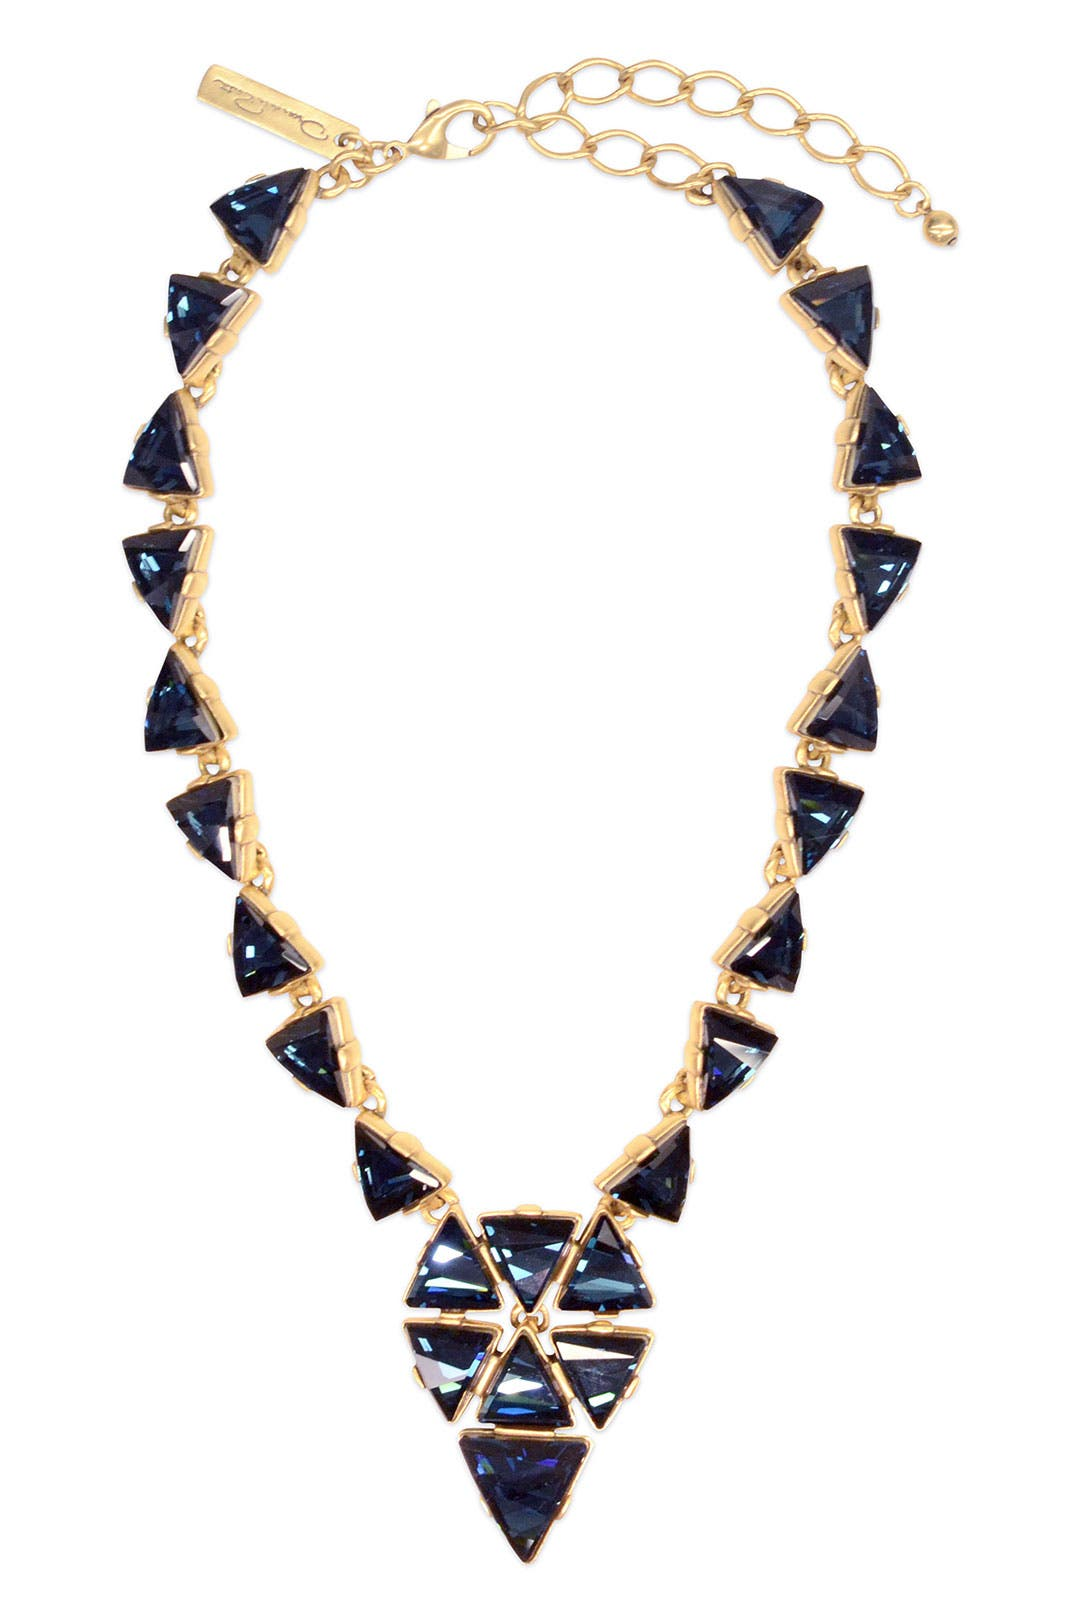 Into the Night Necklace by Oscar de la Renta